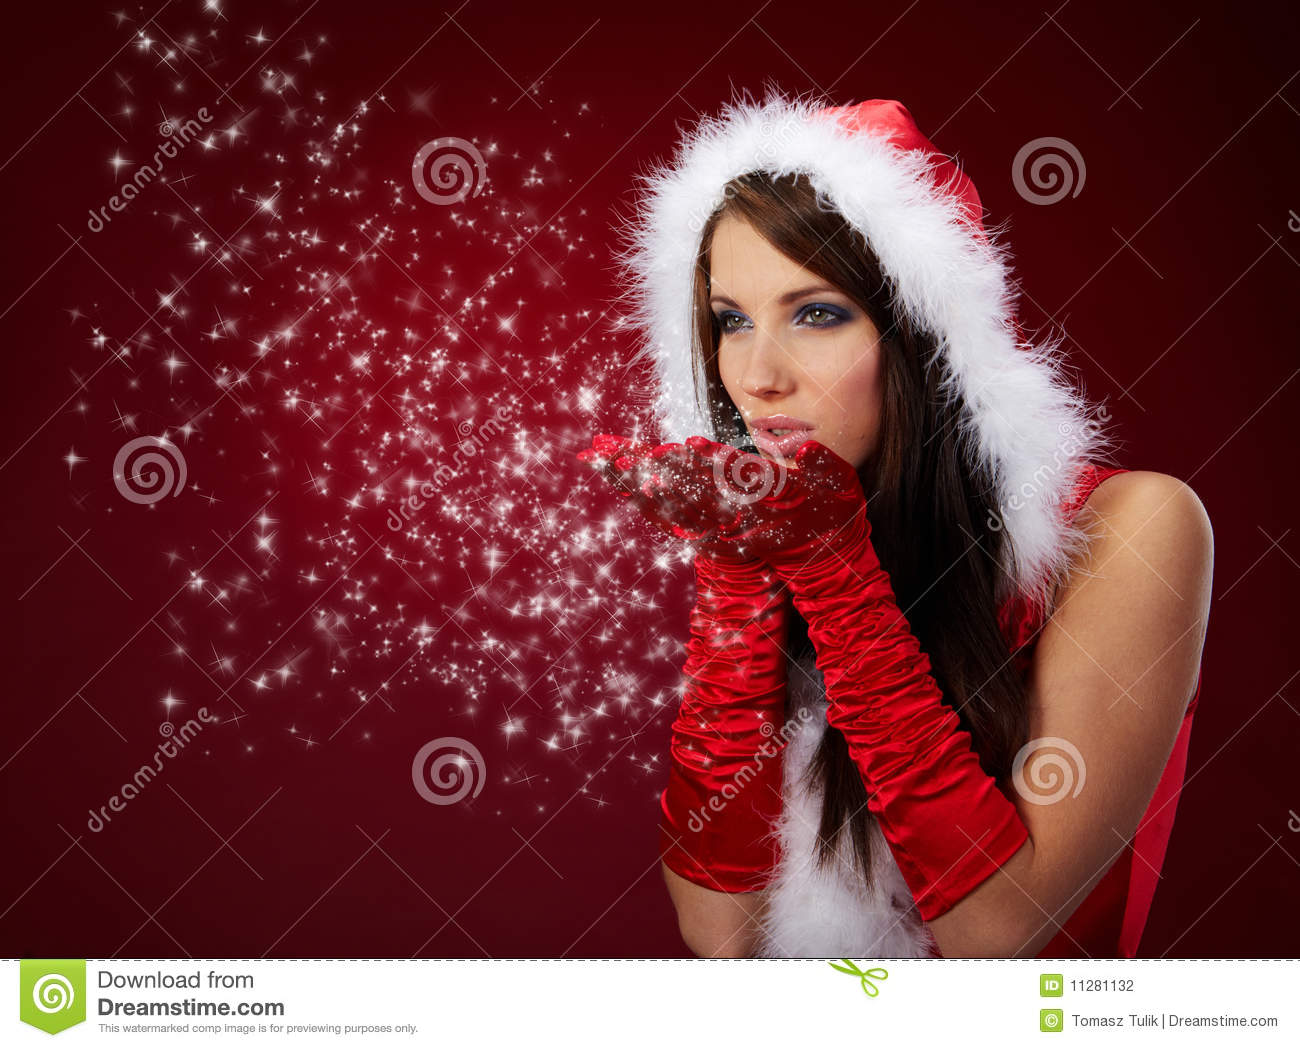 fdf3ec94fa6 Fille Sexy Portant Des Vêtements Du Père Noël Photo stock - Image du ...